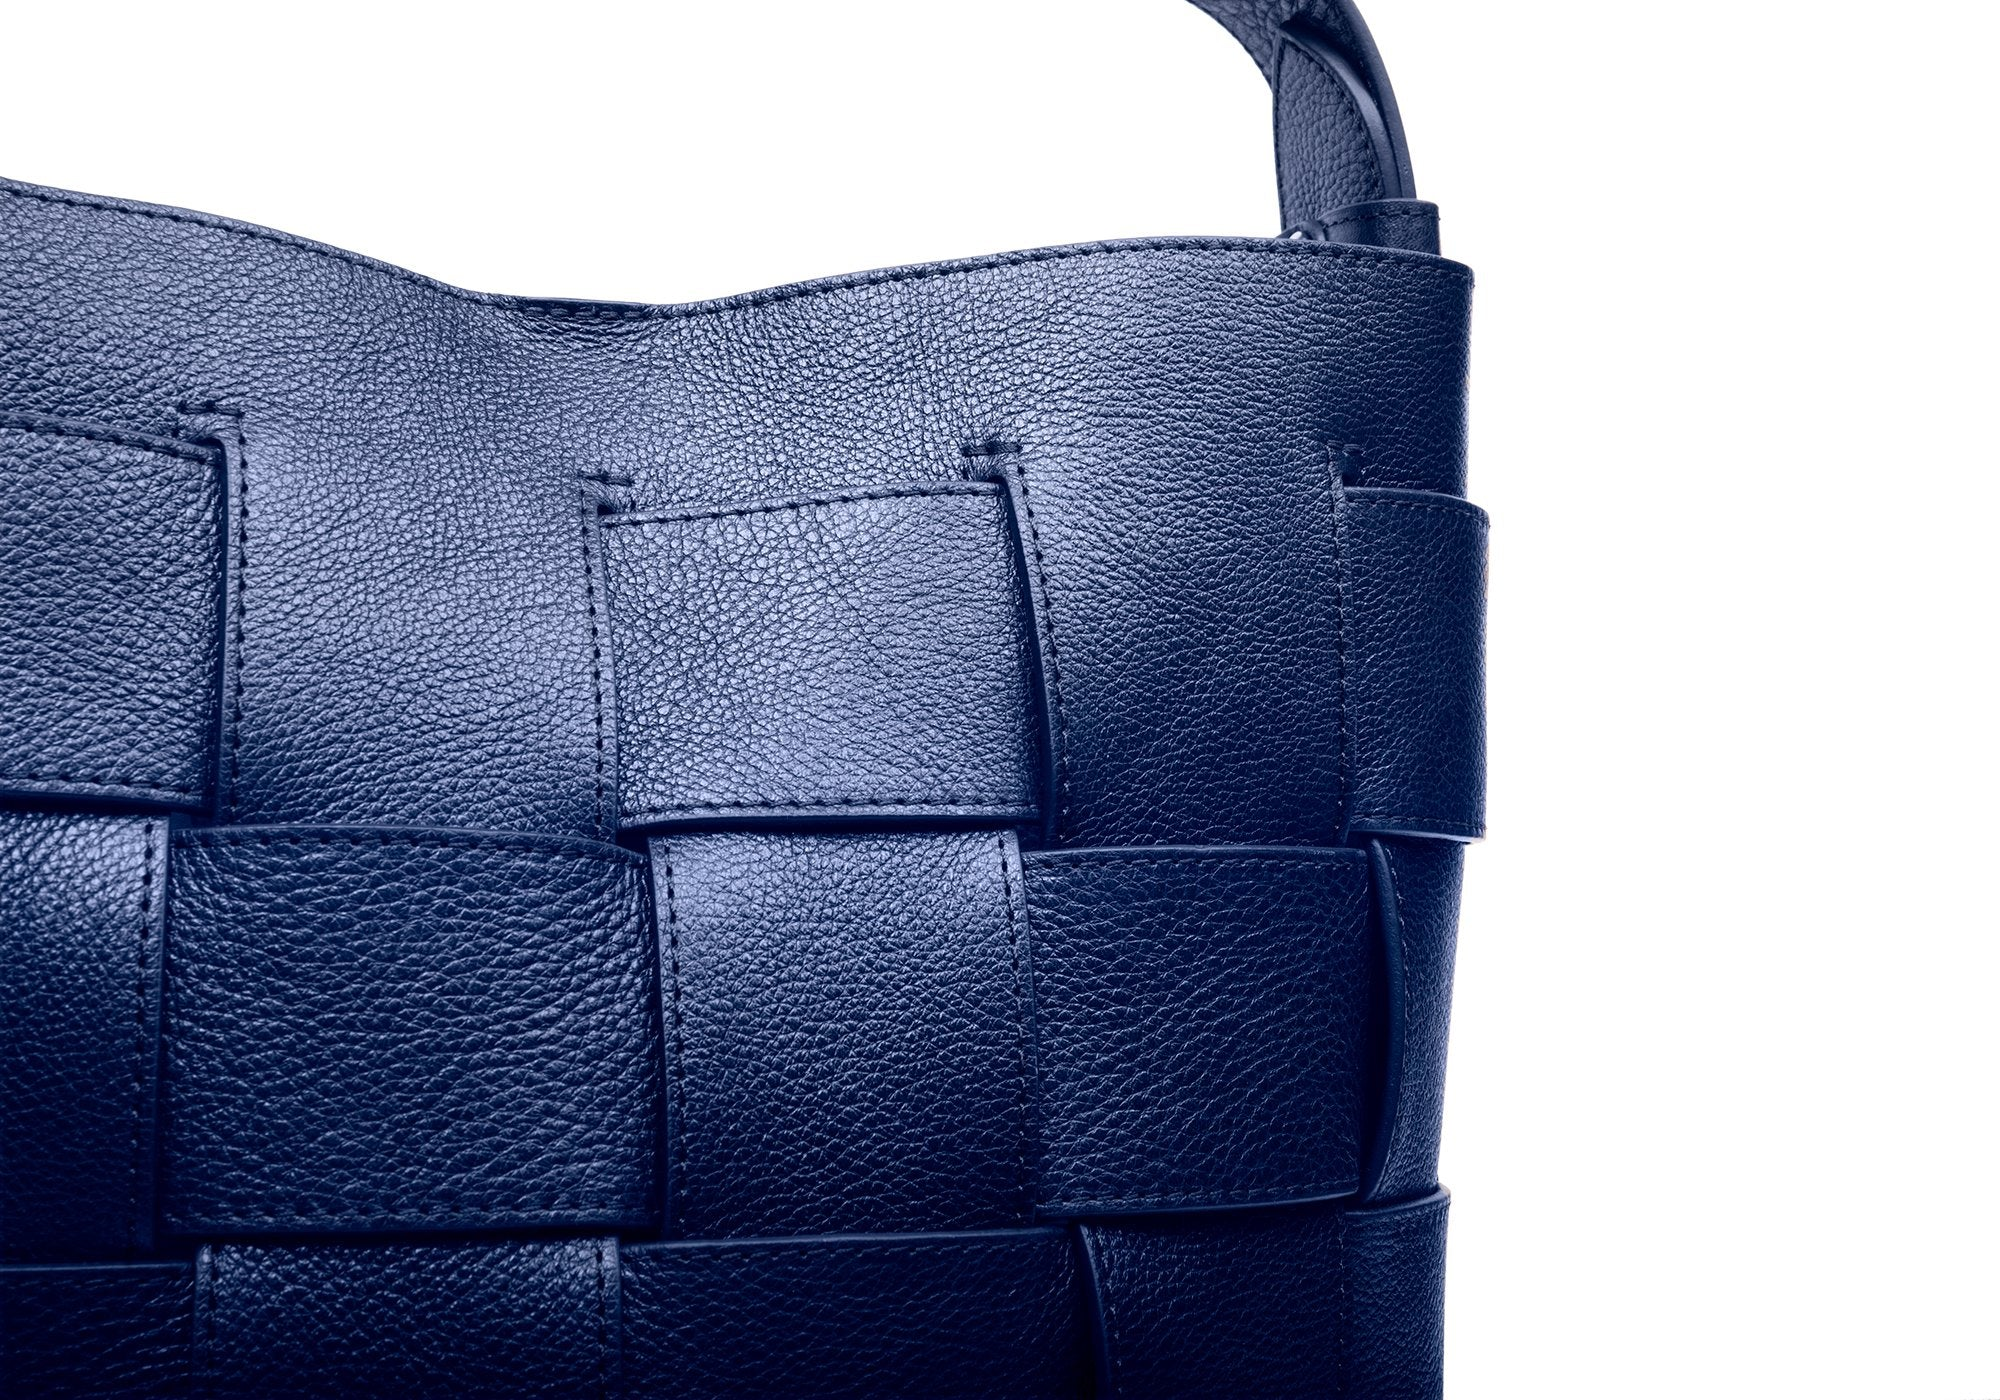 Woven Leather Bucket Shoulder Bag Indigo